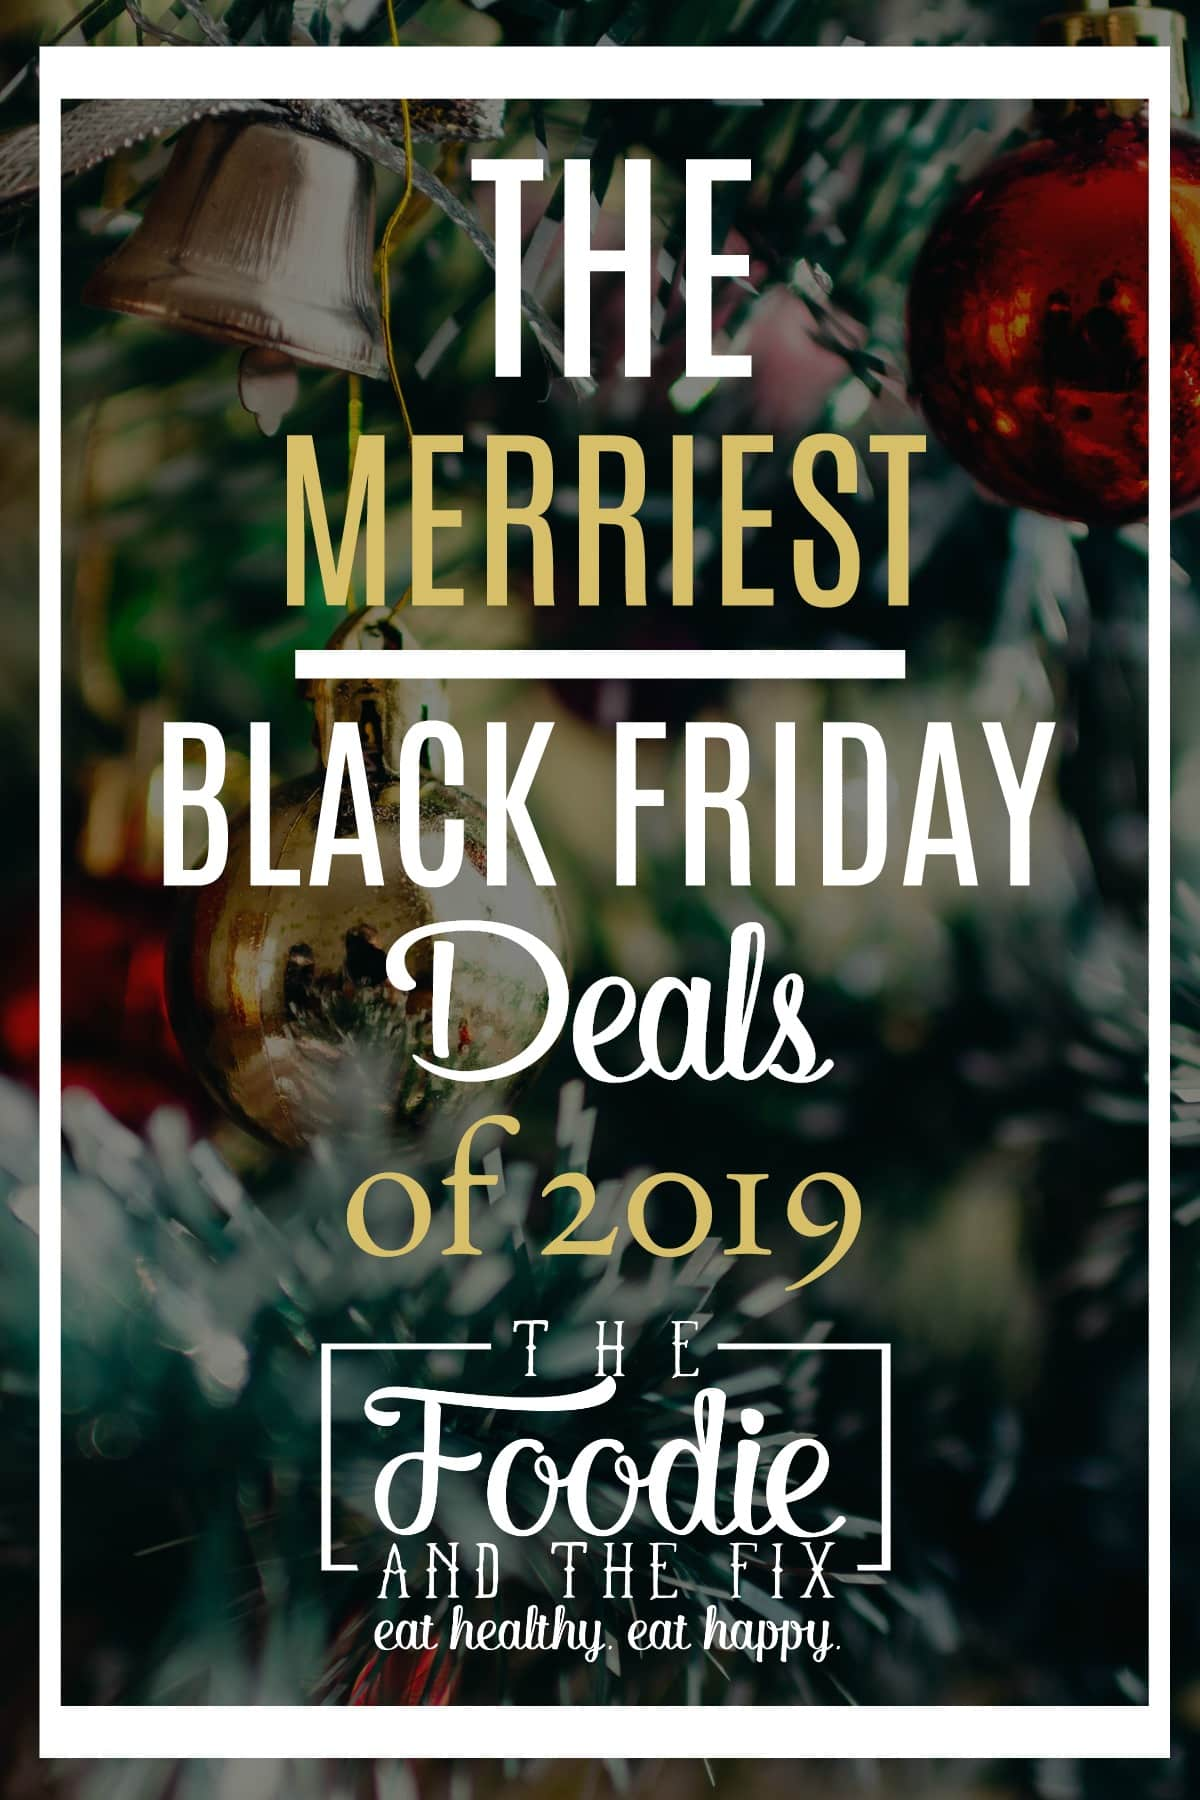 The BEST Black Friday and Cyber Monday deals for 2019 curated by The Foodie and The Fix! Updating this post all weekend long! #blackfriday #cybermonday #kitchendeals #parenting #kitchen #amazonprime